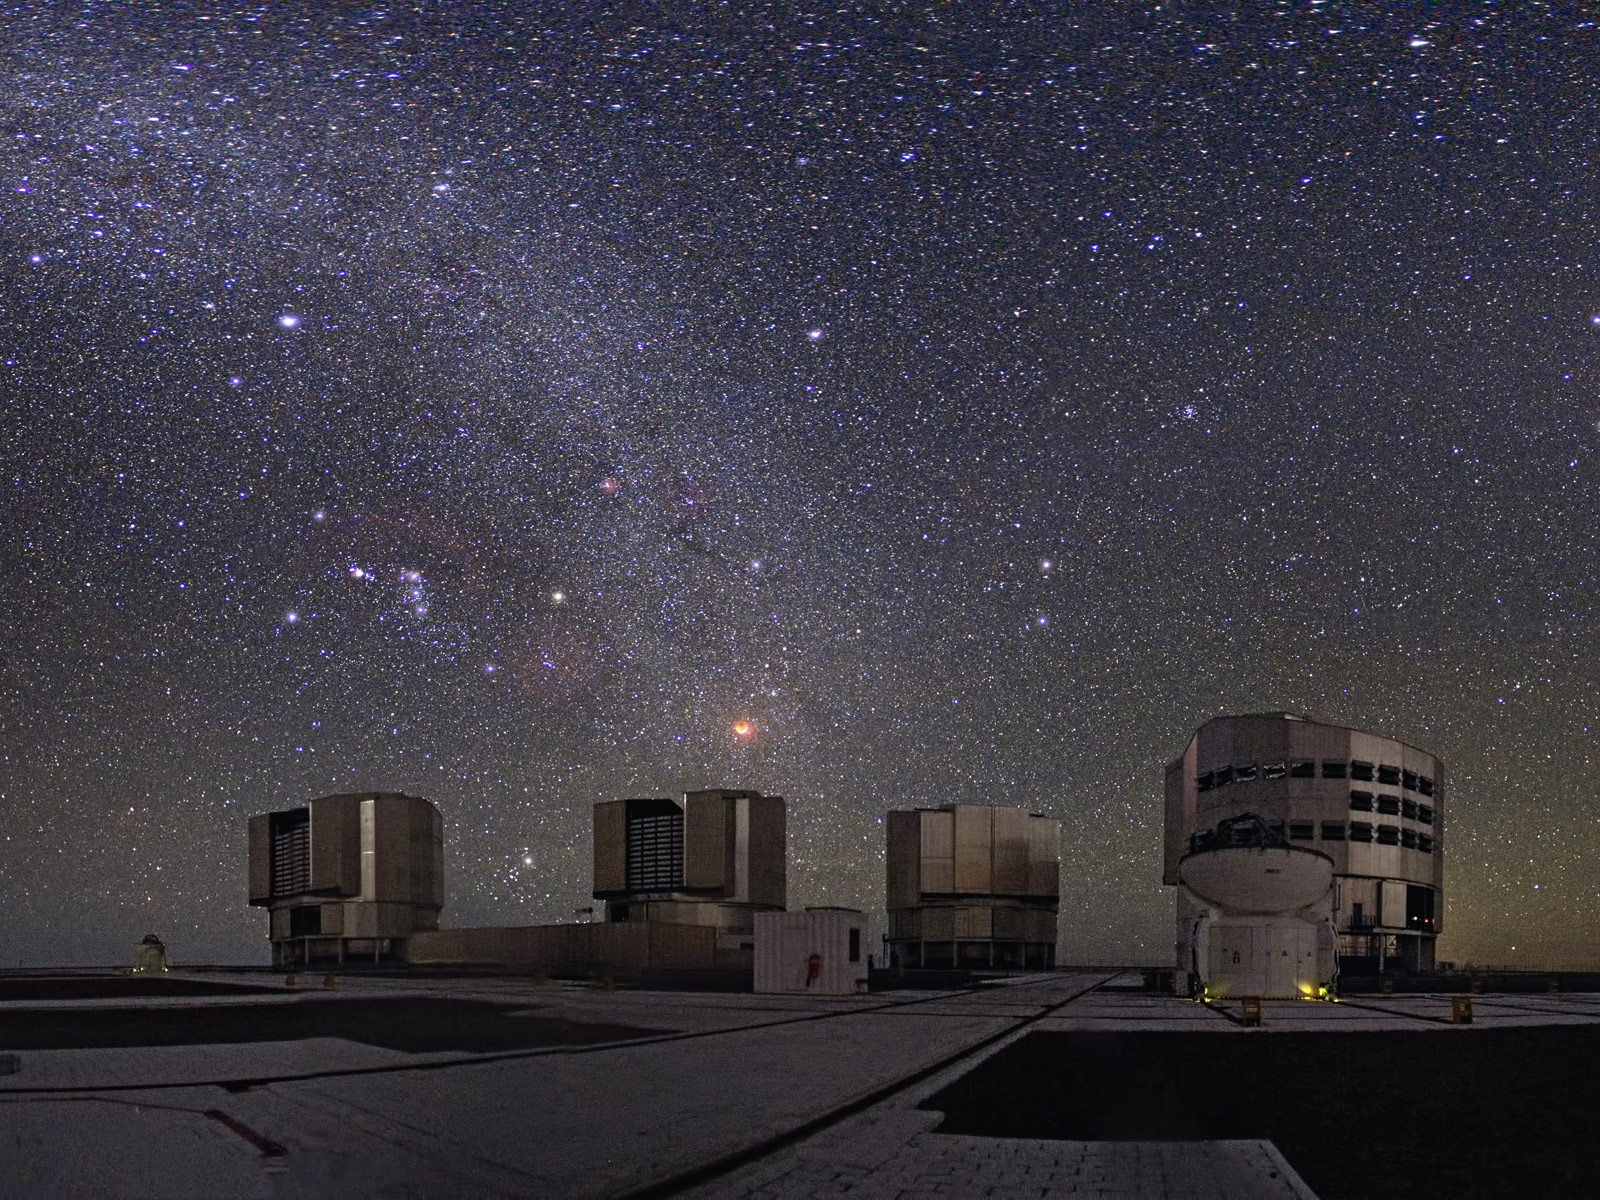 The total lunar eclipse of December 21, 2010, and the entire sky is visible from the site of ESO's Very Large Telescope (VLT) at Cerro Paranal in Chile.